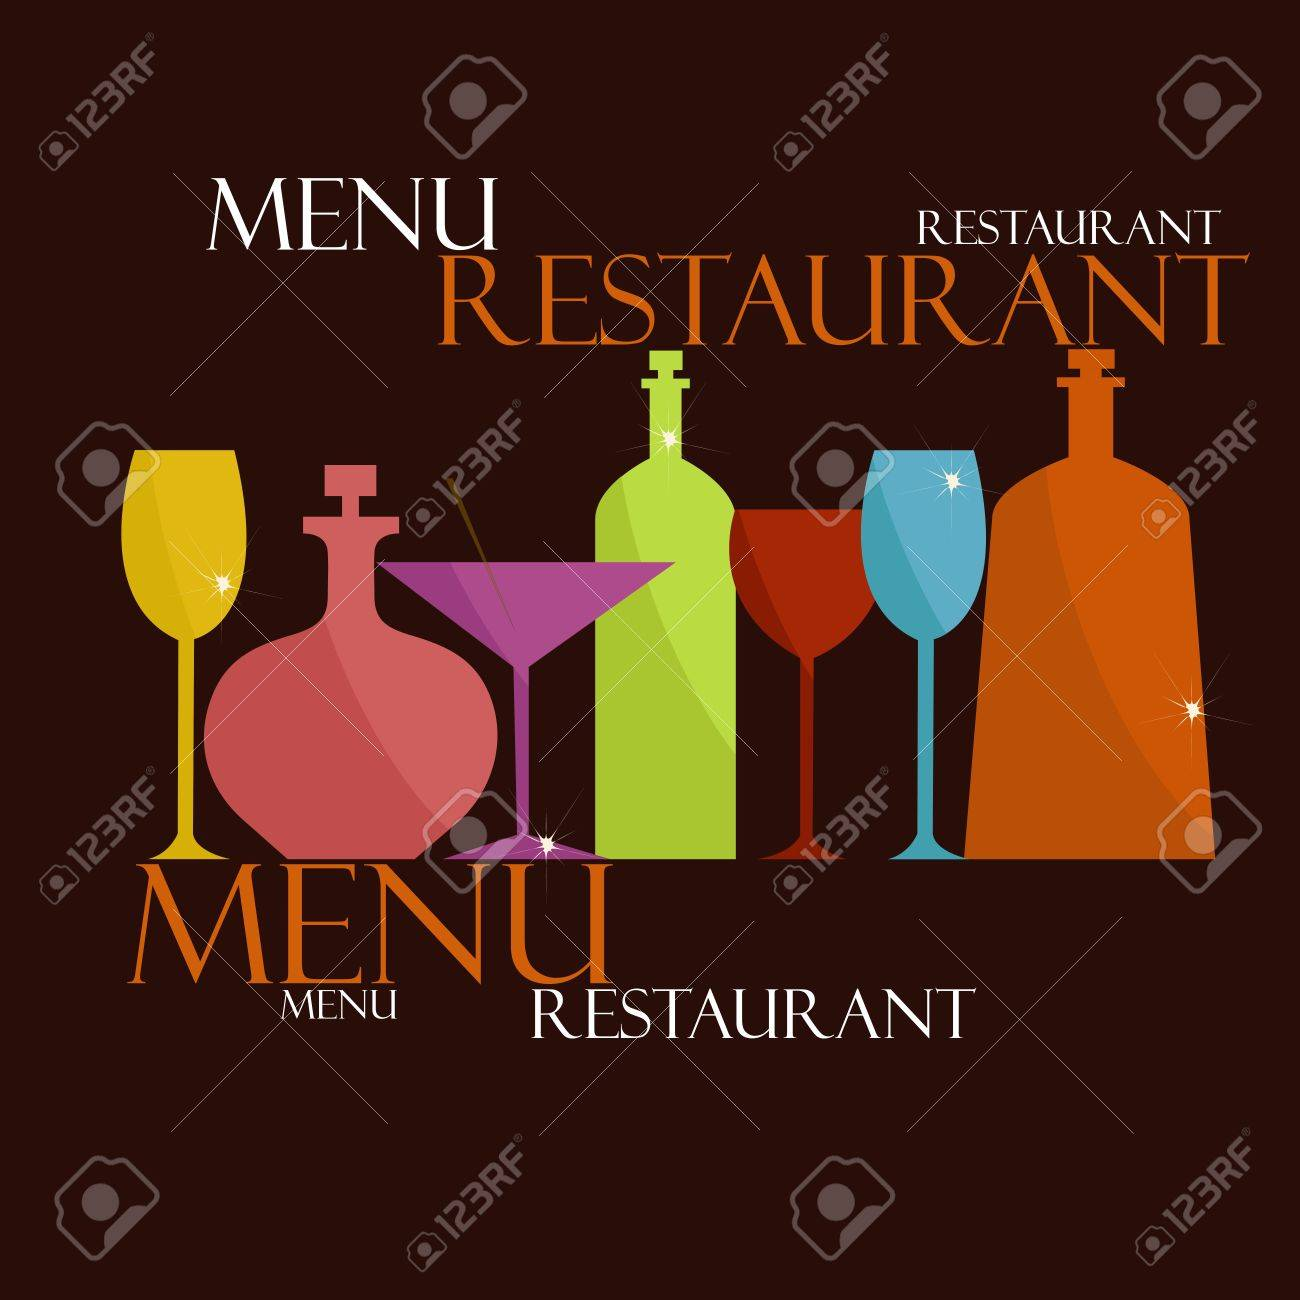 sample menus for restaurants and cafes royalty free cliparts